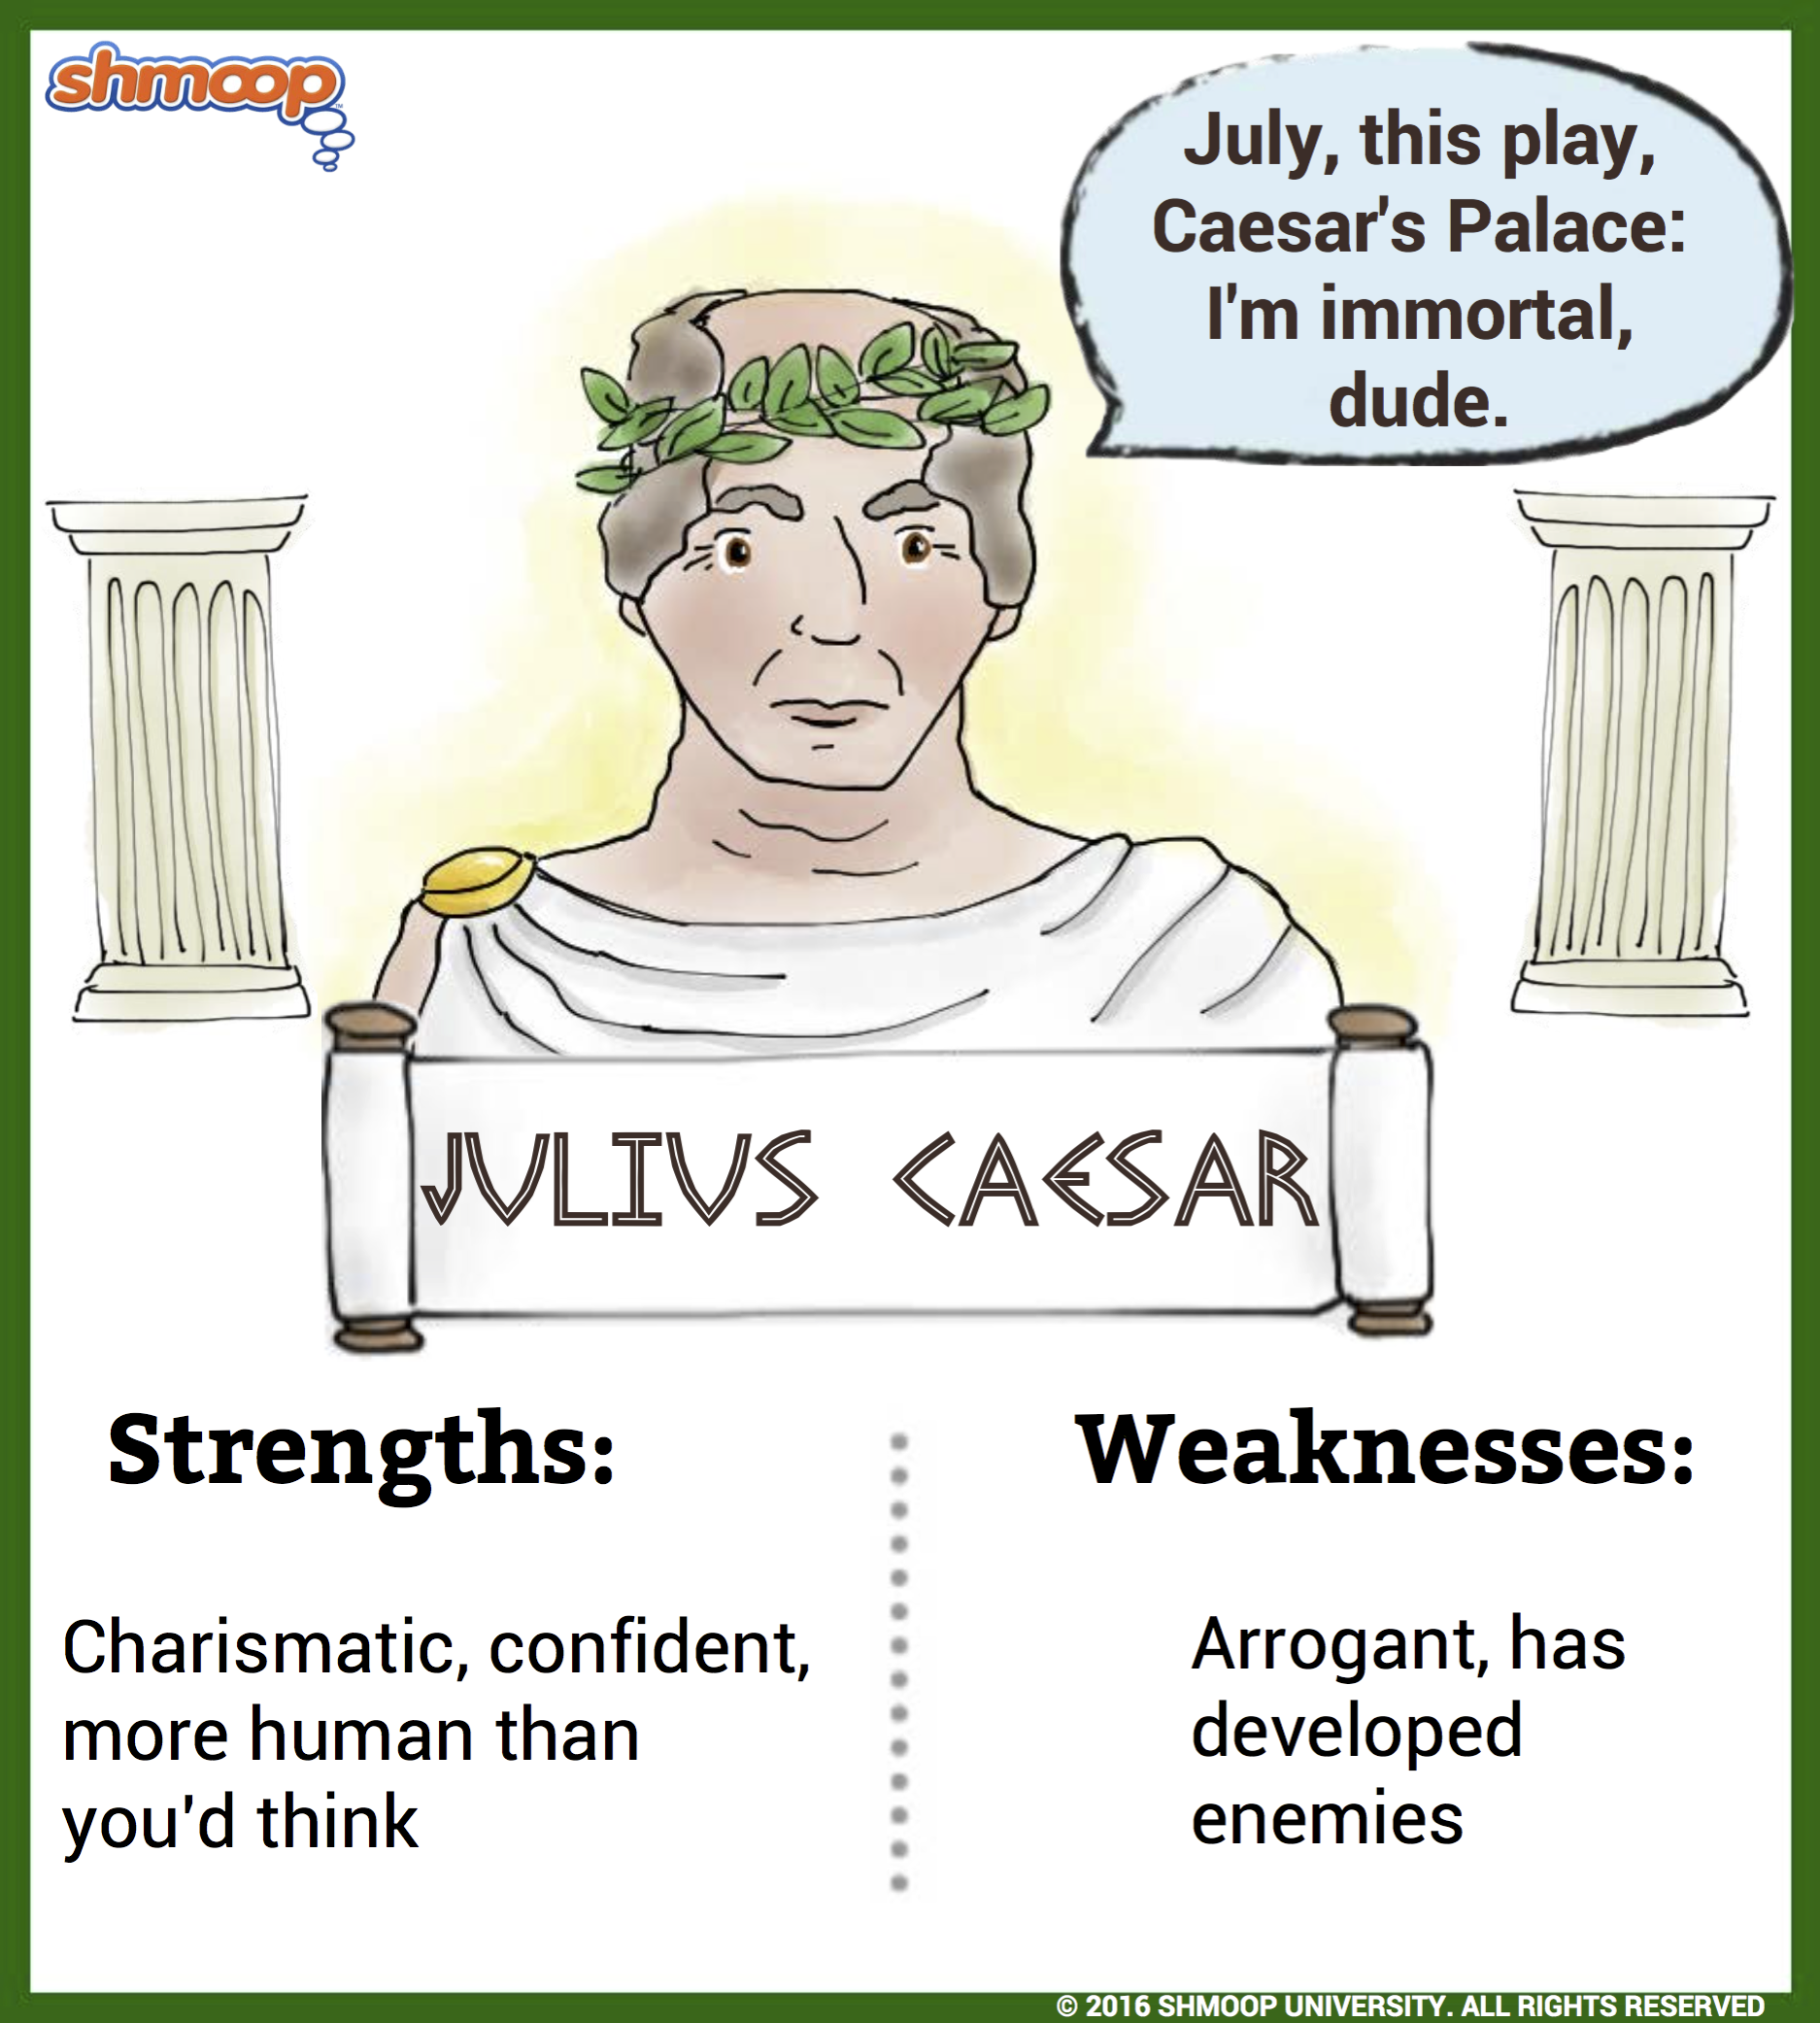 an assessment of the character of brutus in the play julius caesar by william shakespeare Brutus' character is made even more complex by his unconscious hypocrisy he has conflicting attitudes toward the conspiracy, but he becomes more favorable following his becoming a member of the plot against caesar.